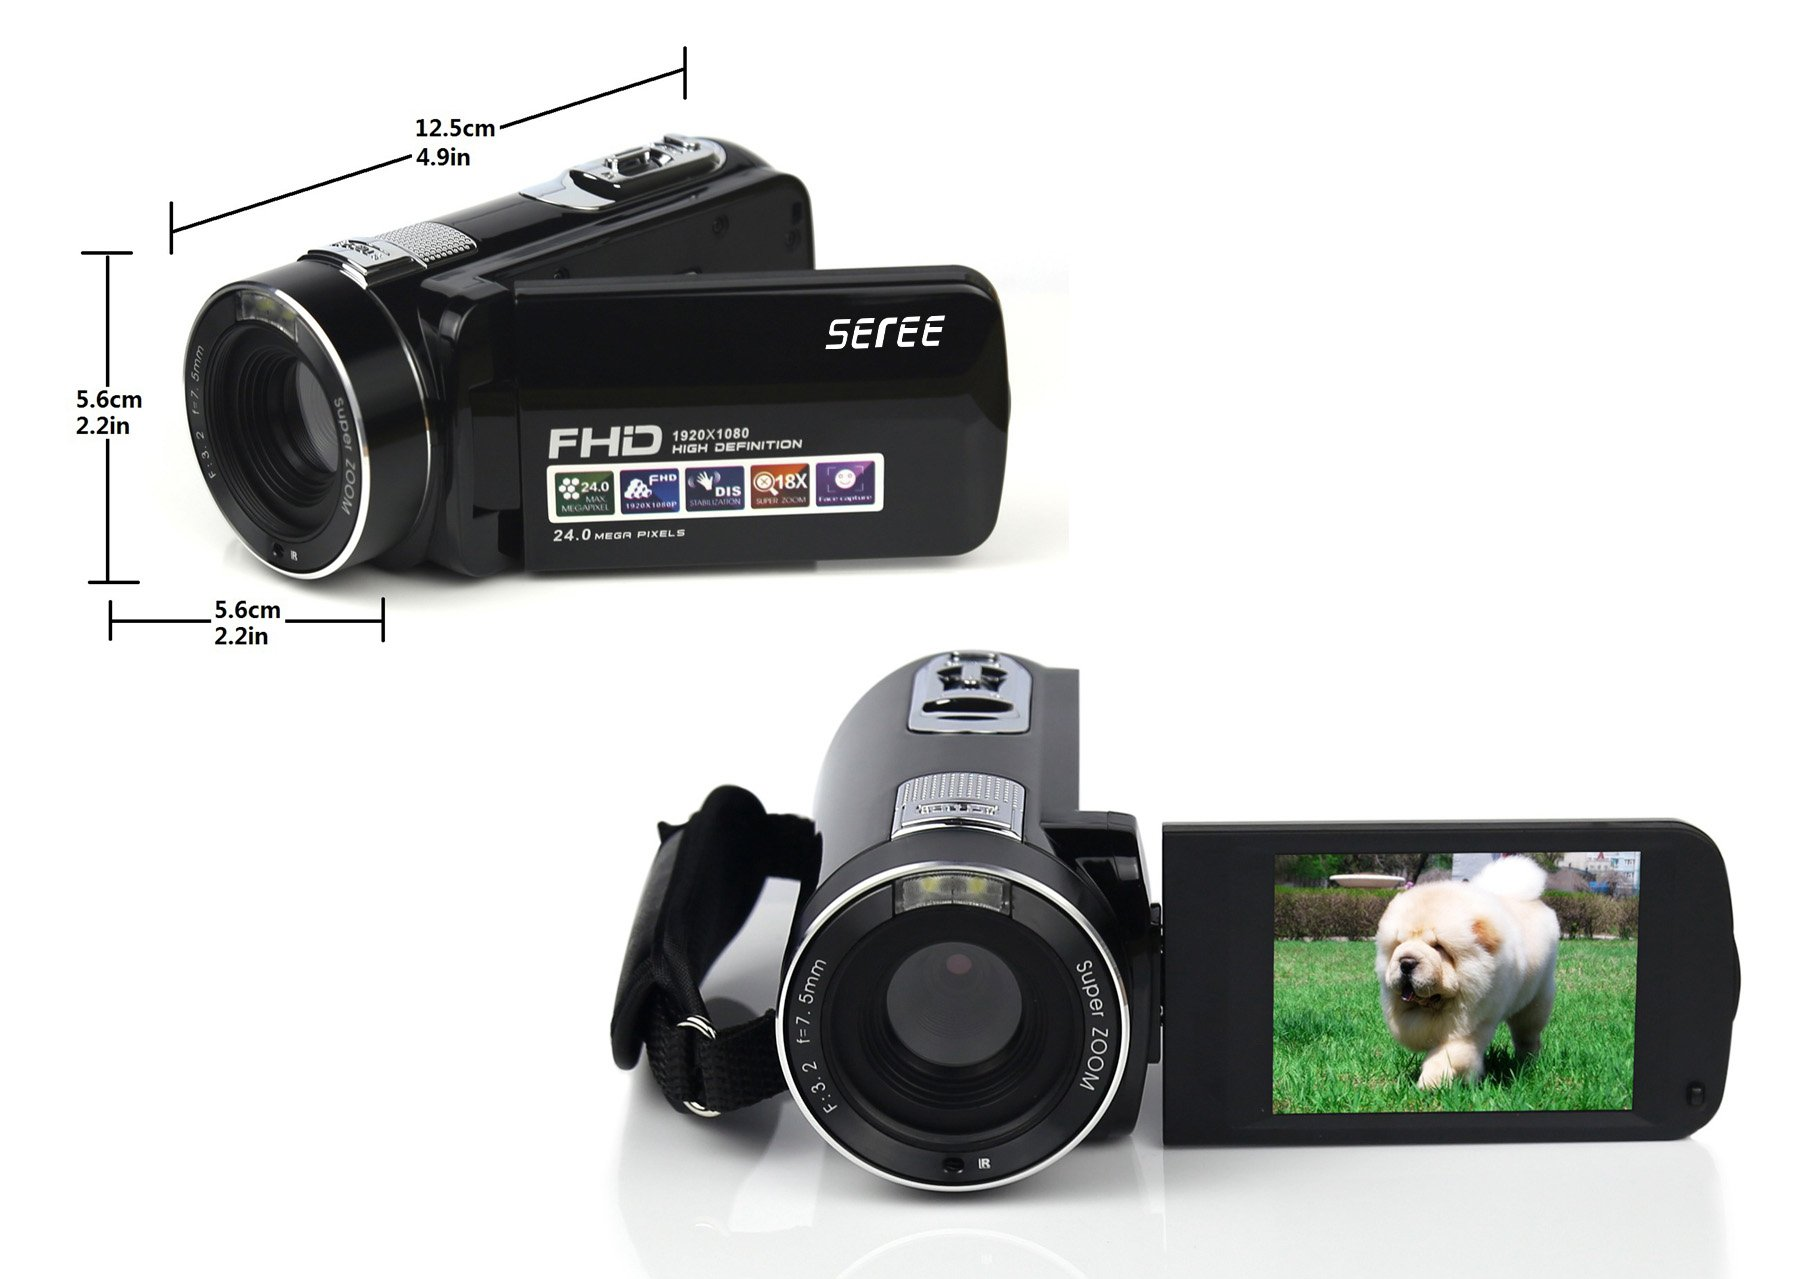 SEREE HDV-M6 Full HD 1080P Beauty Face Max. 24MP DIS Face Detection Elegant Appearance Self Timer Camcorder FHD Video Camera (HDV-M6) by SEREE (Image #2)